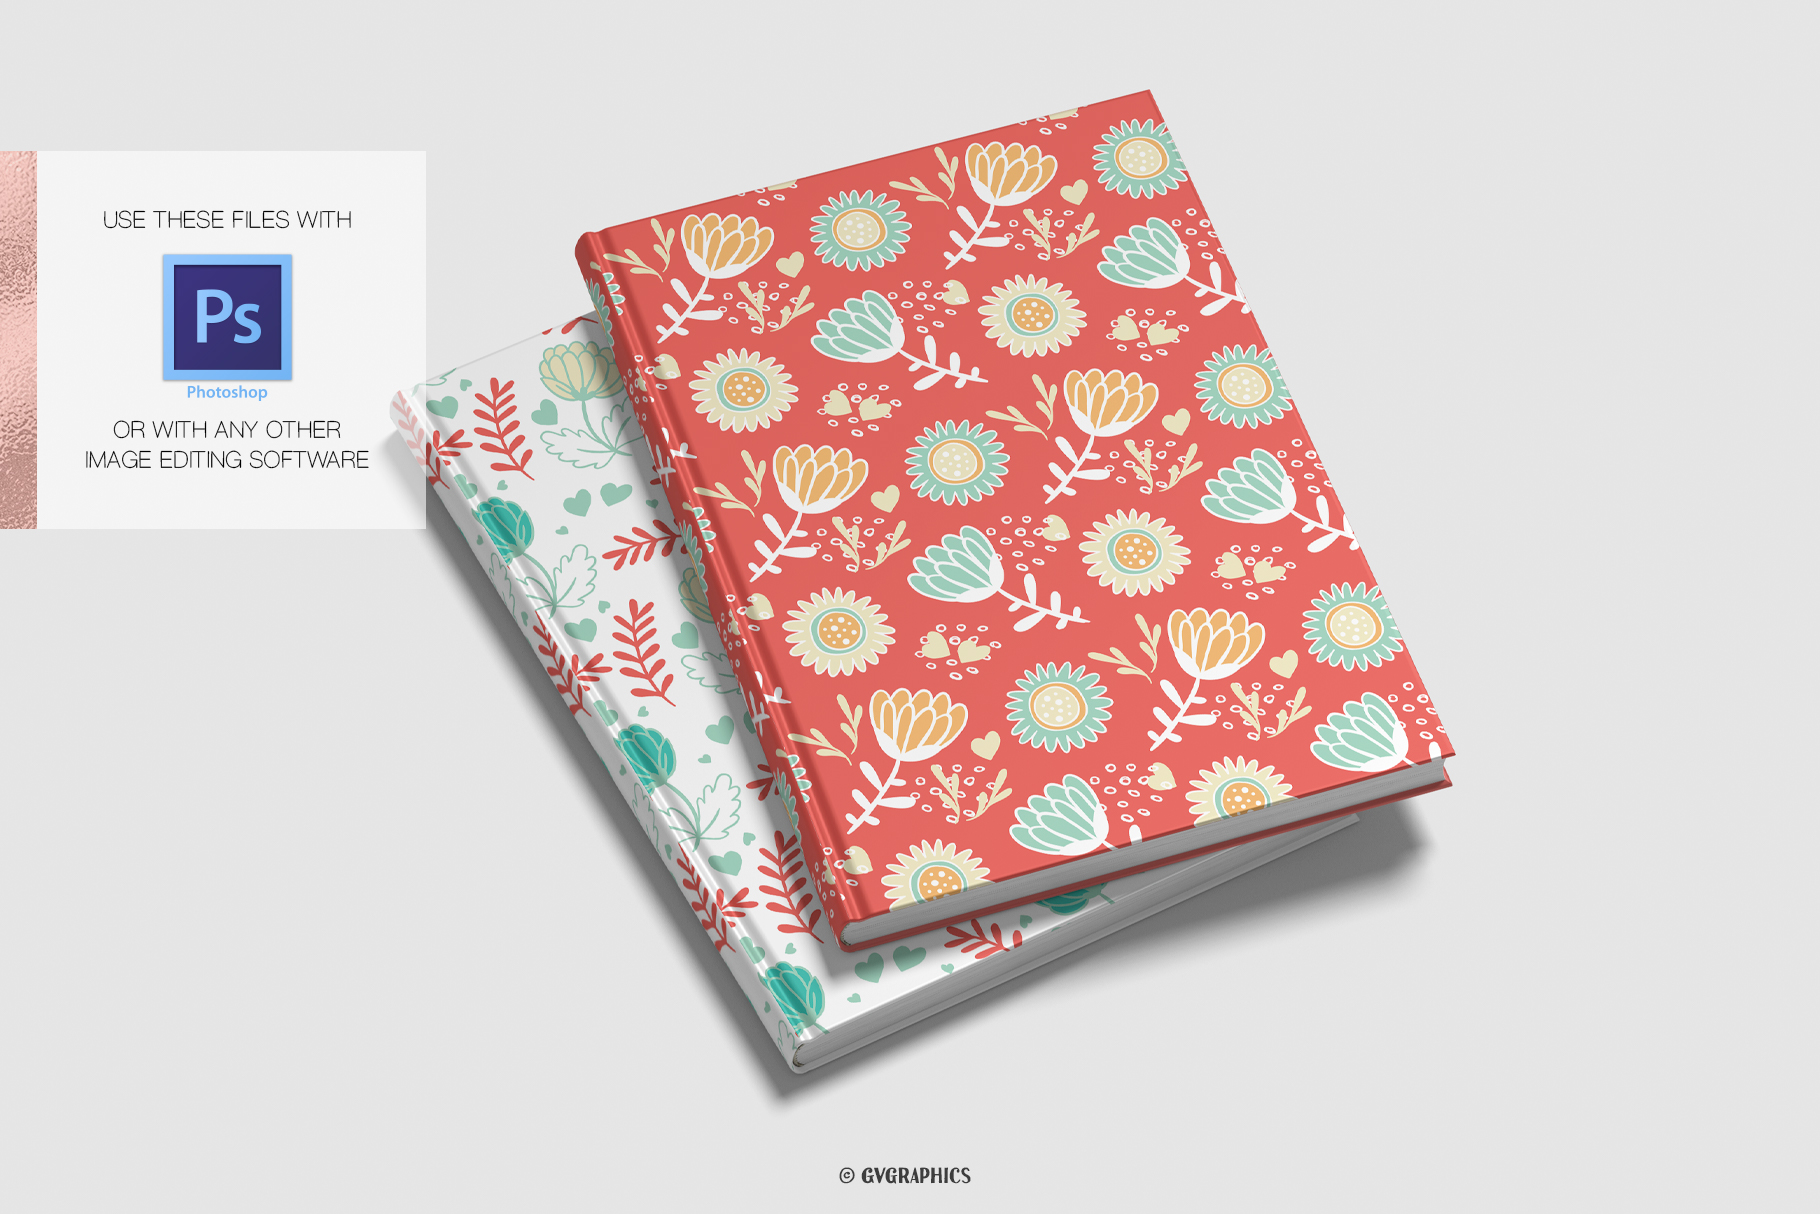 Notebook Cover Made On The Basis Flowers Seamless Patterns.